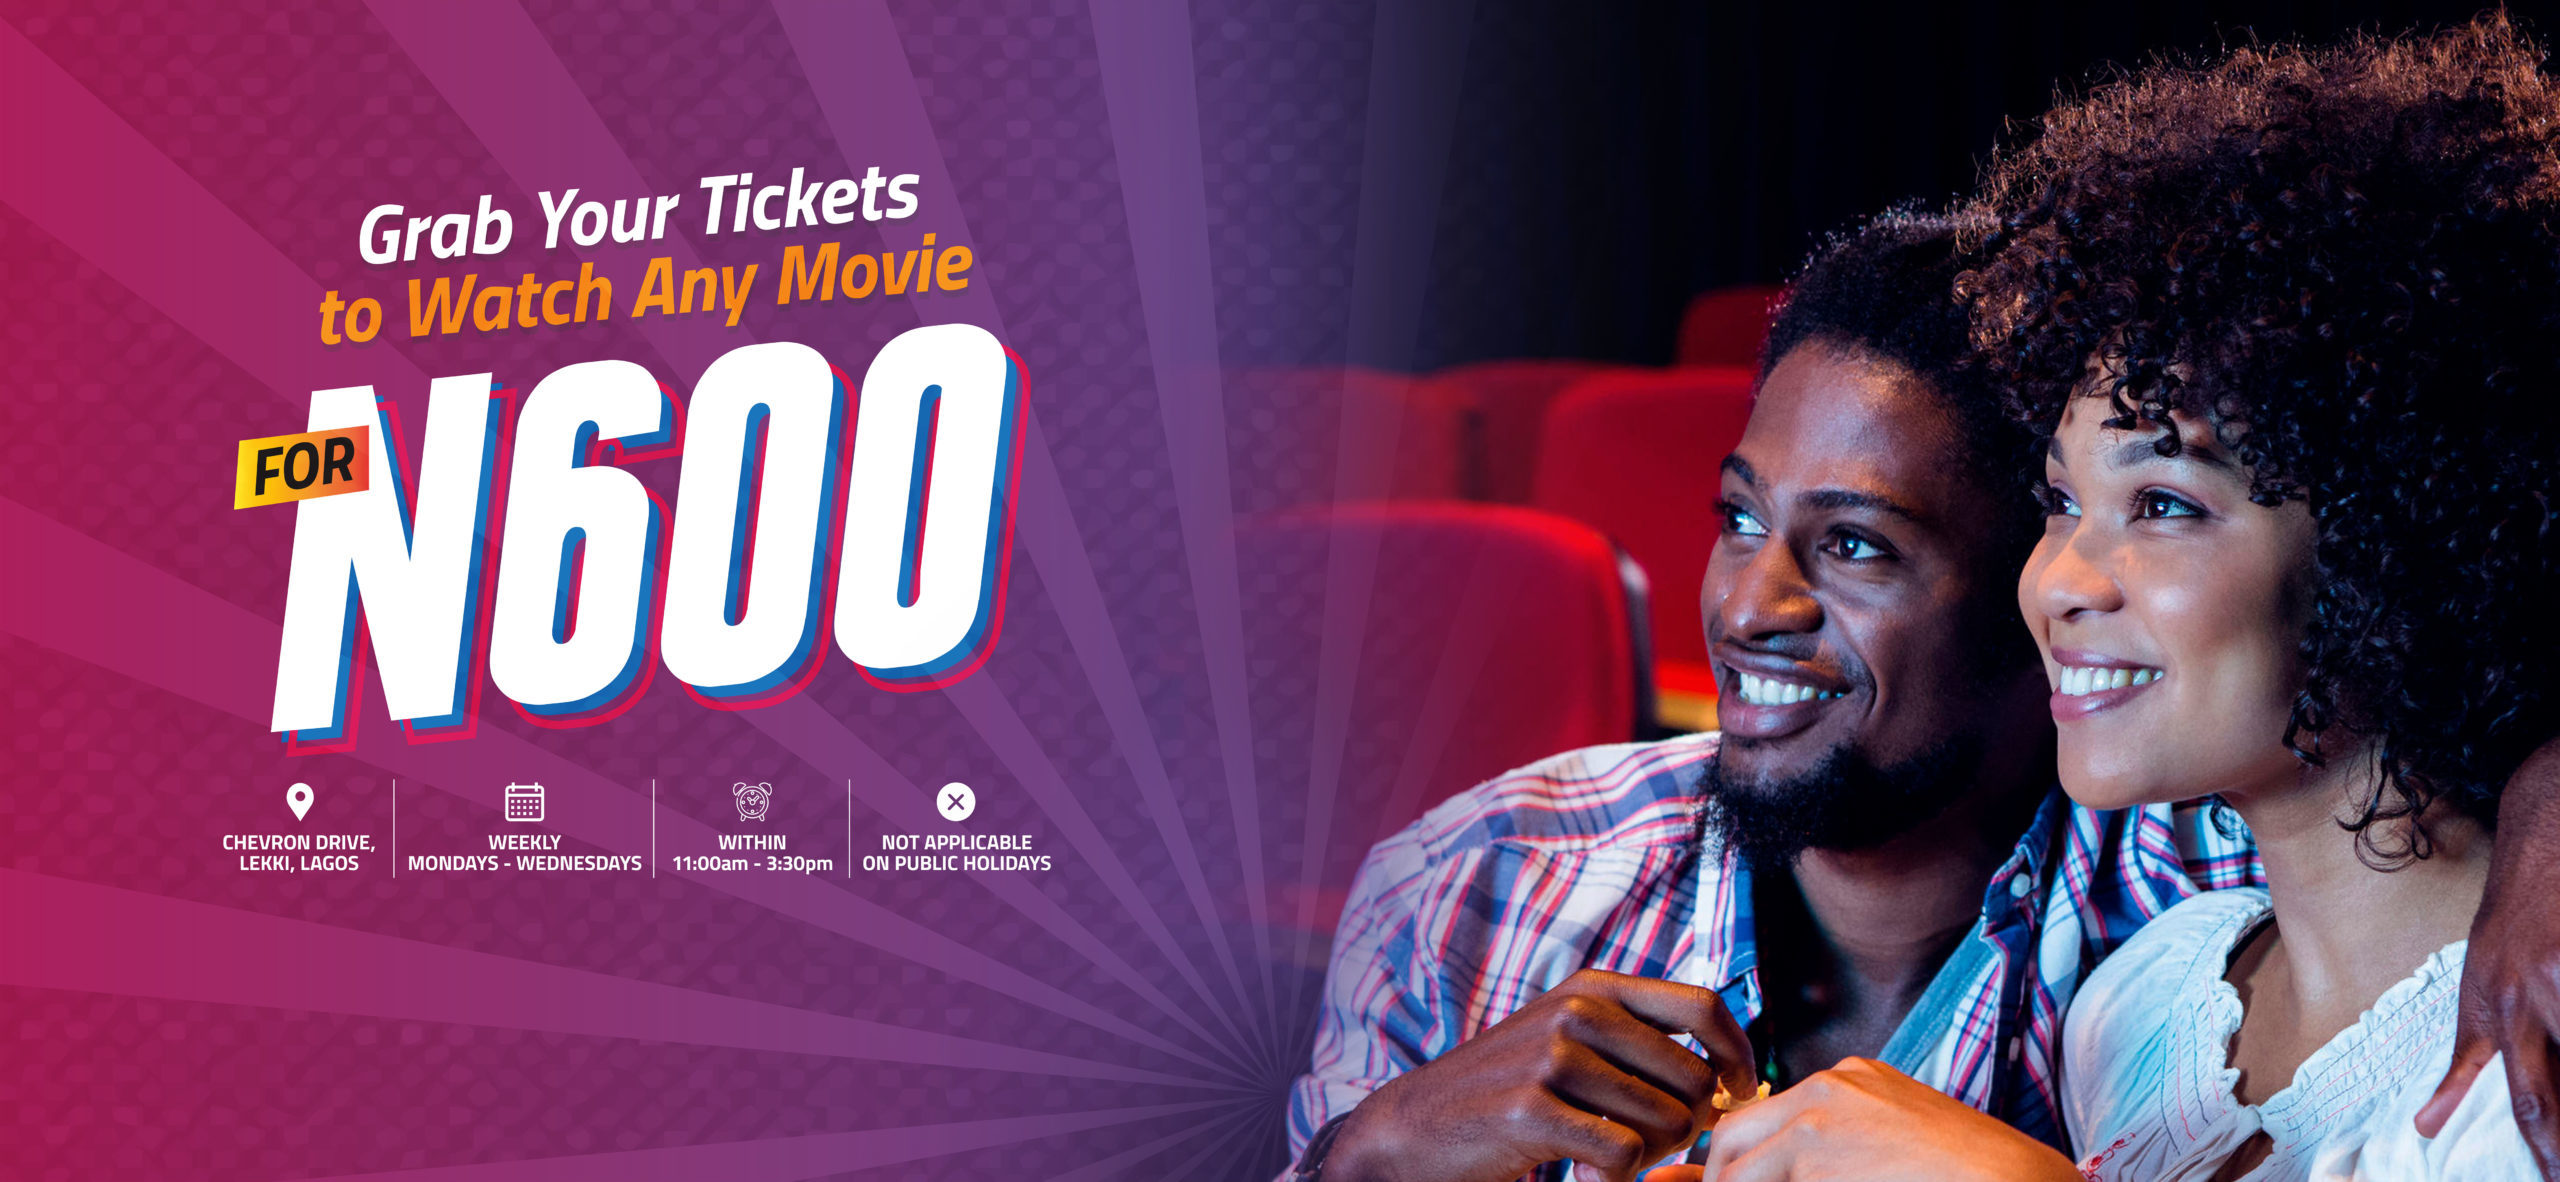 cheap-movie-tickets-chevron drive-lekki-lagos-nigeria-grand cinemas-movie rush-grandcinemas